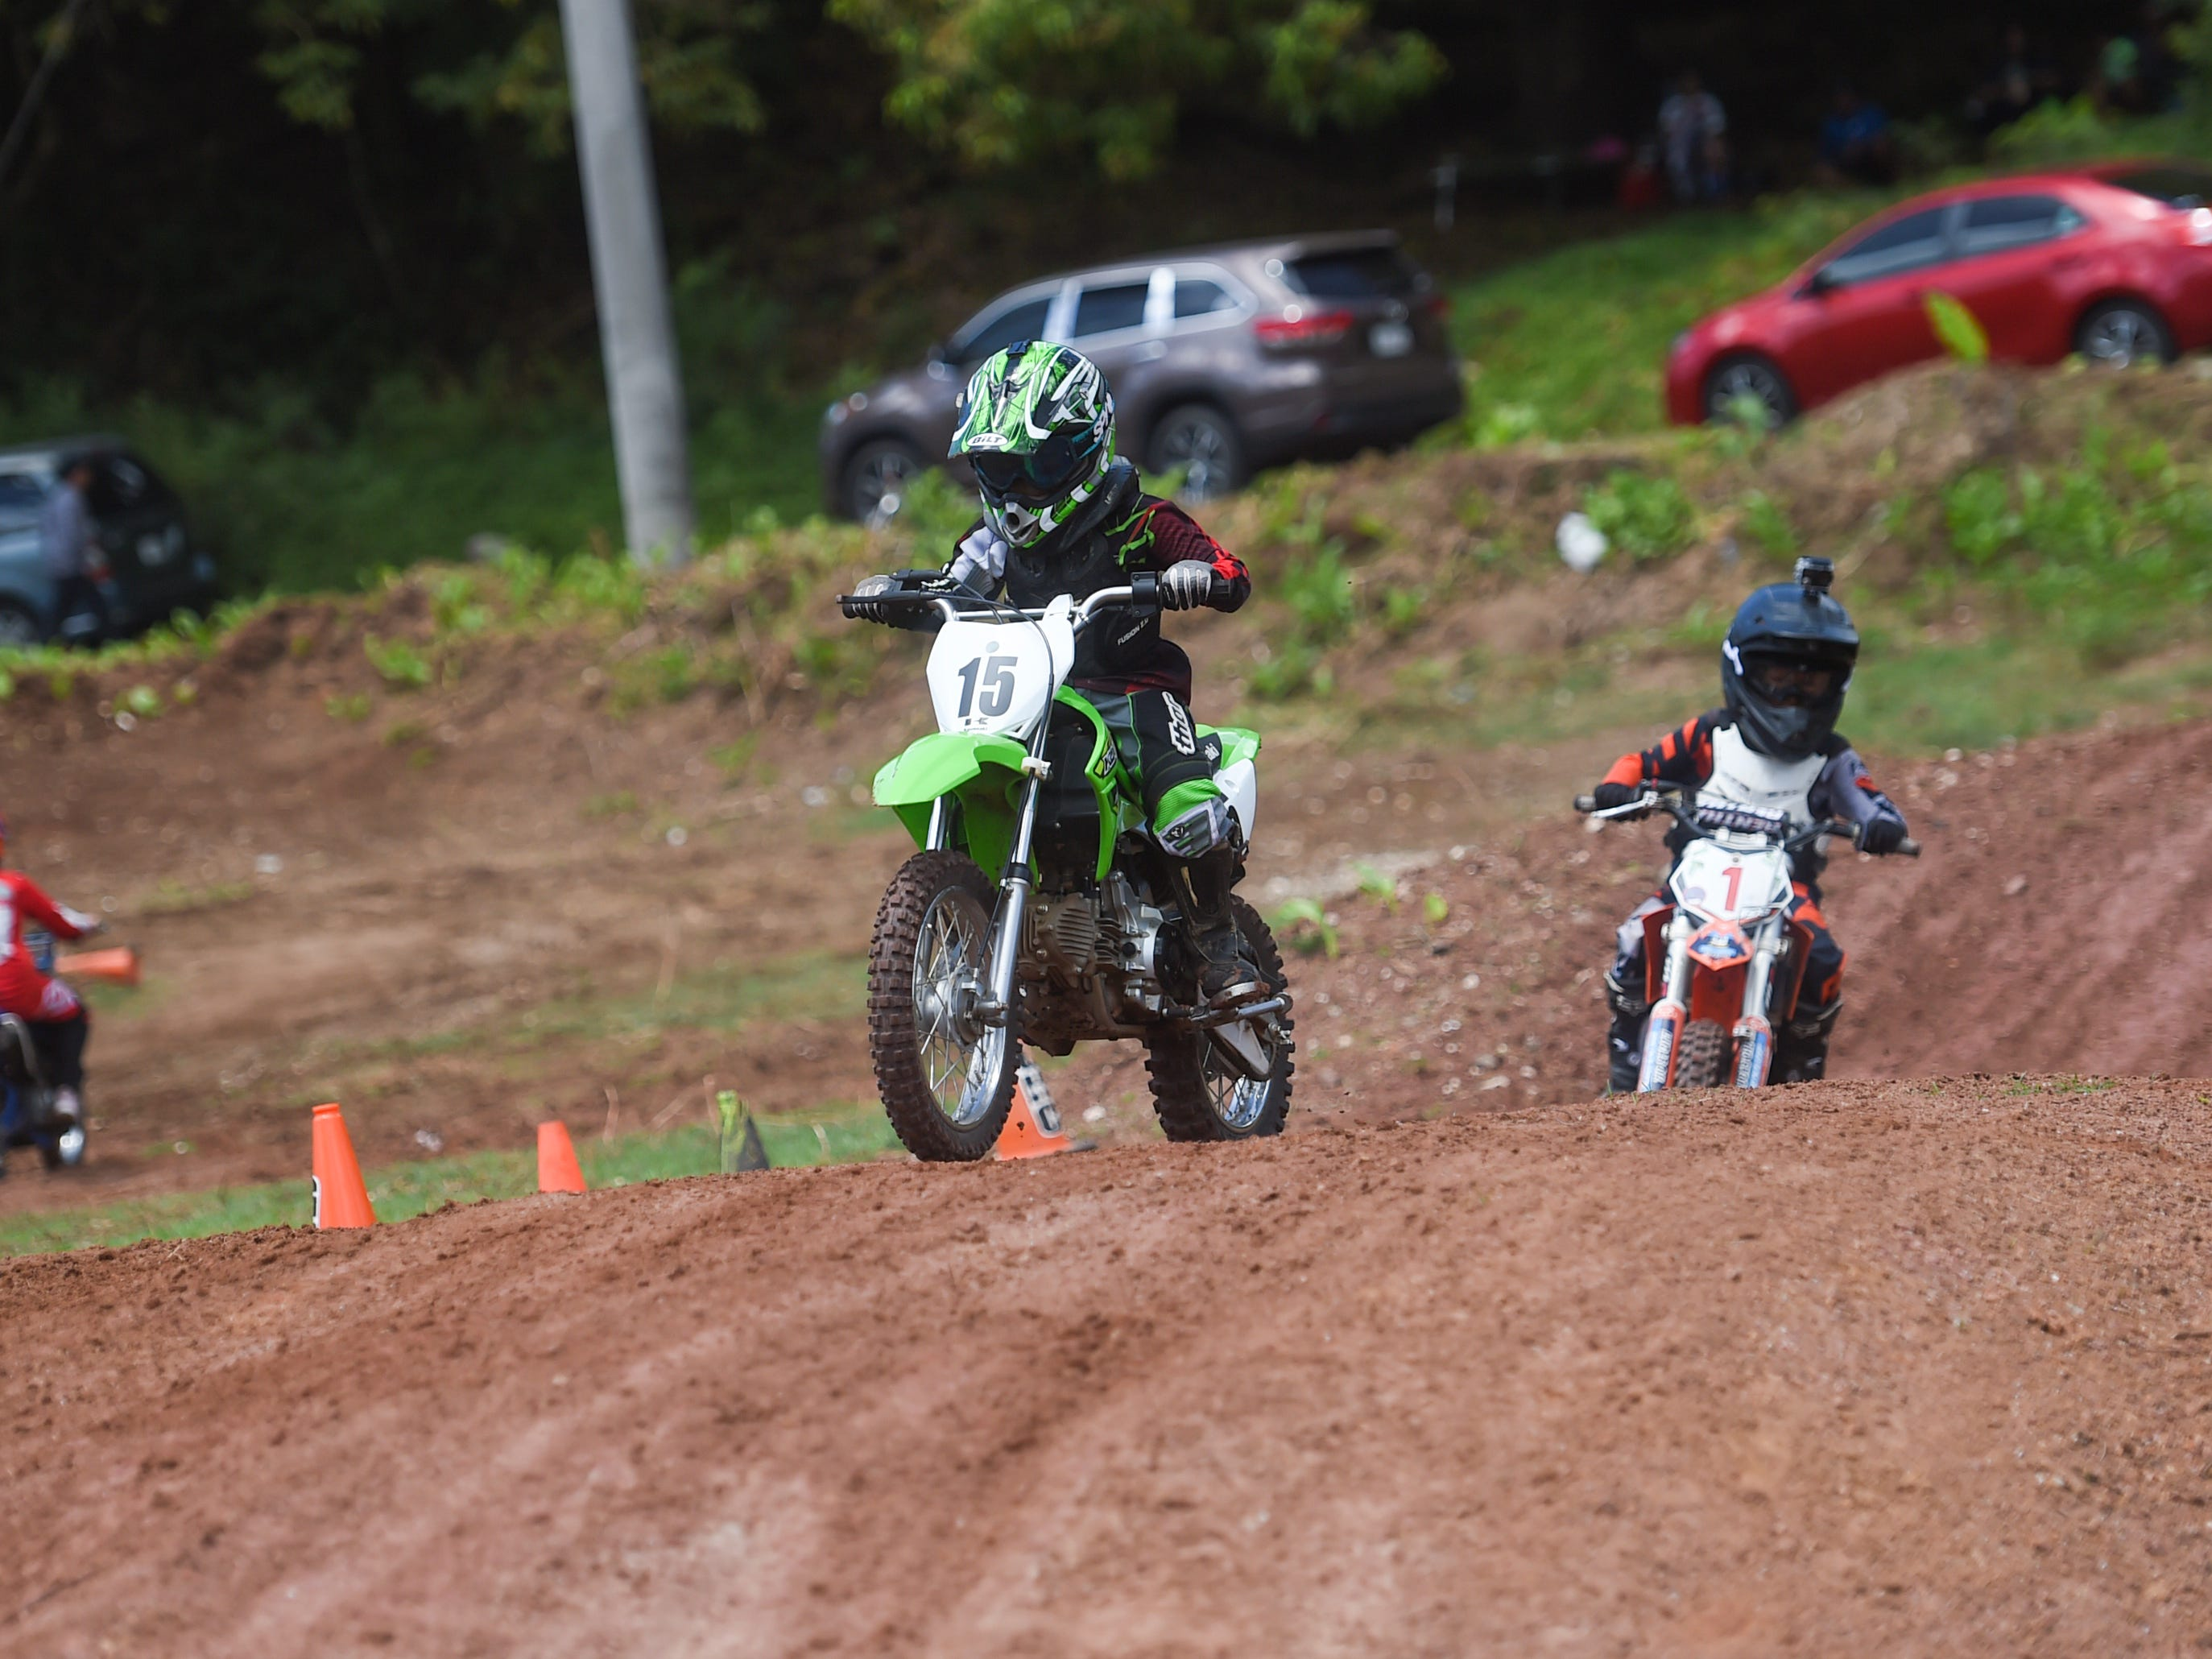 Motocross competitor Ty Overstreet (15) pulls away from John Aguon (1) during their 65cc race in the Guam History and Chamorro Heritage Day Festival 2019 at Umatac Bay Park, March 10, 2019.